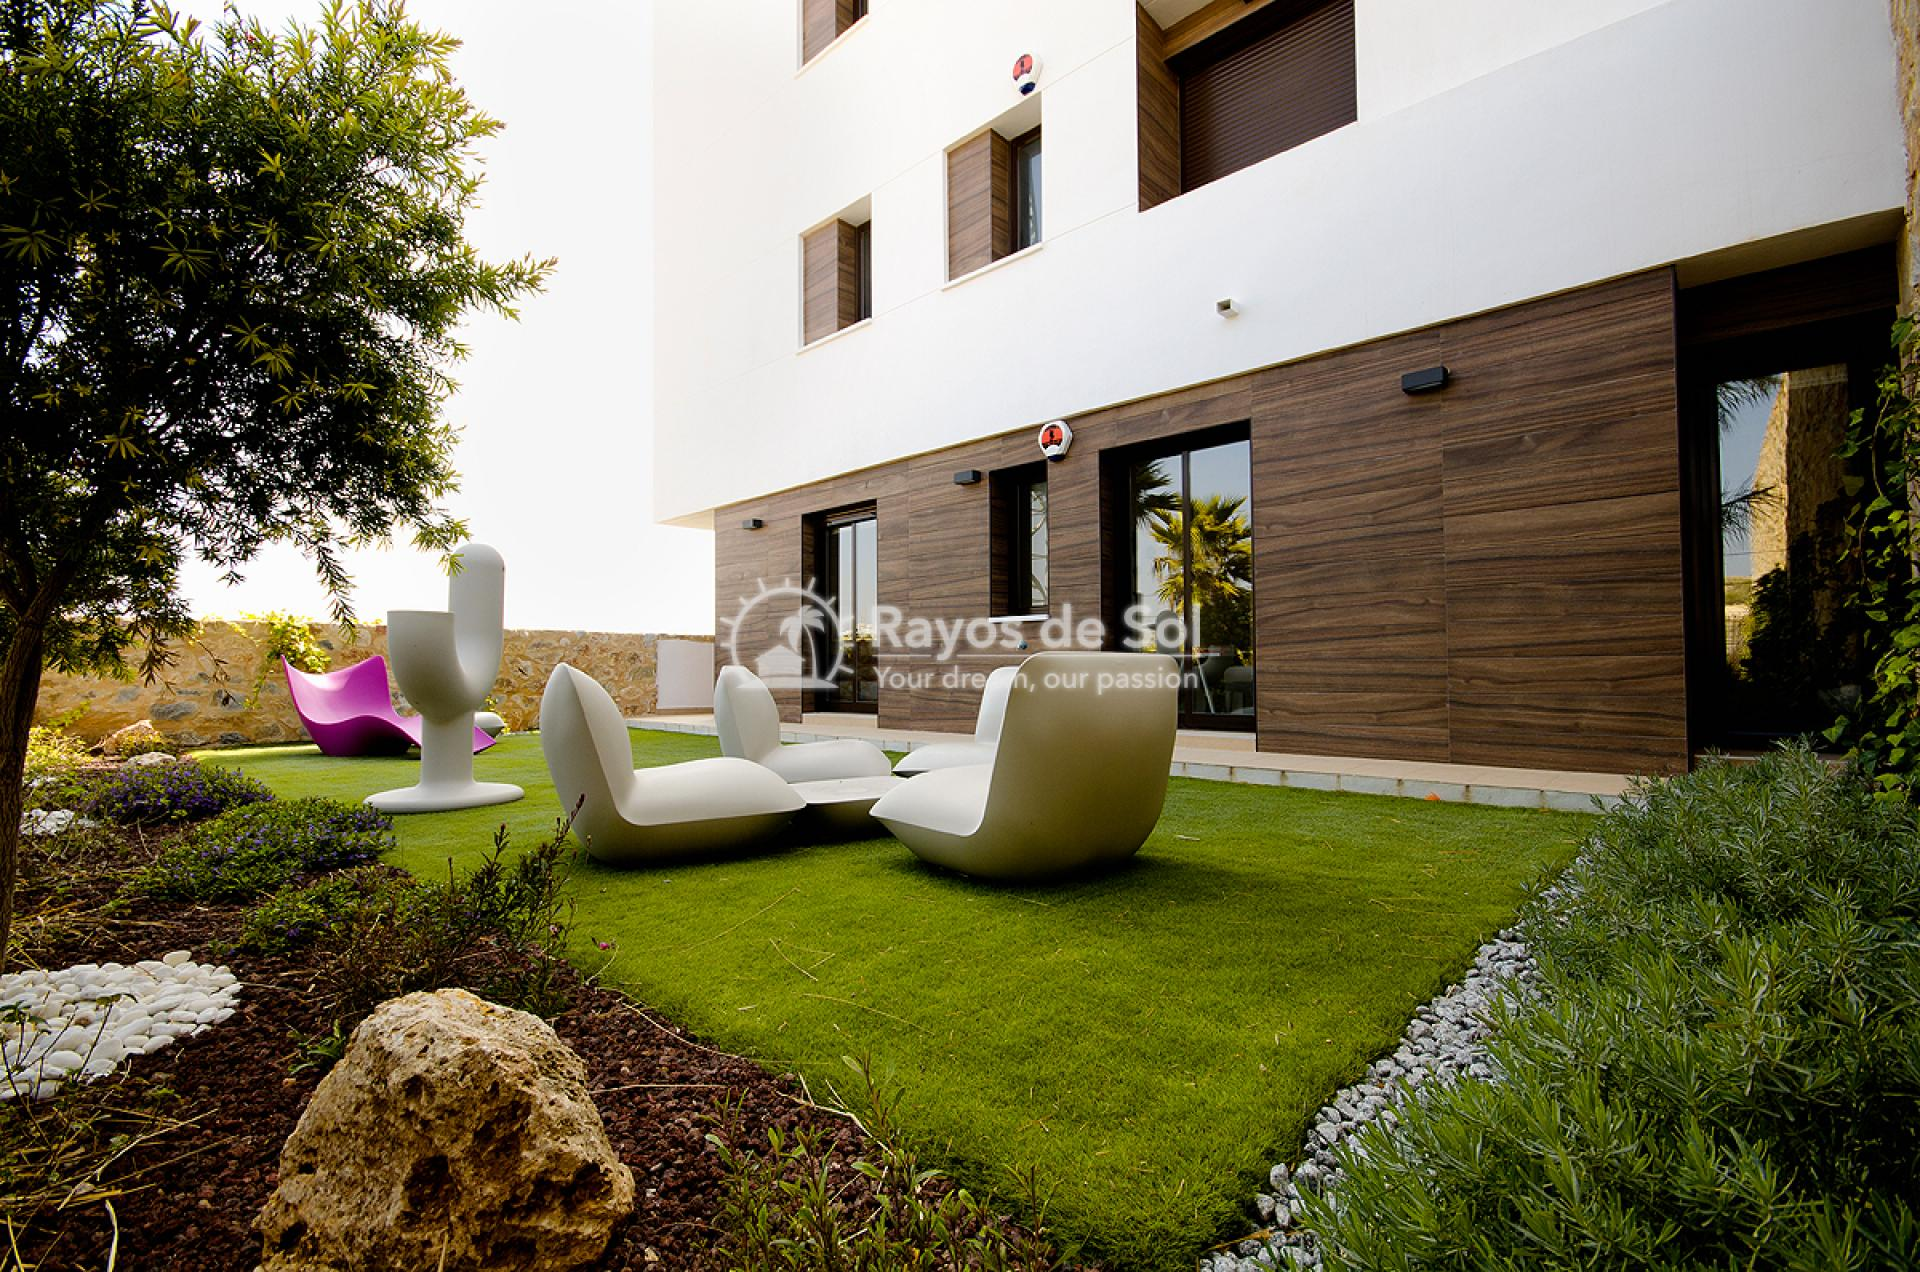 Golf apartment ground floor in Las Ramblas, Villamartin, Costa Blanca (VIPALO3-2B) - 1